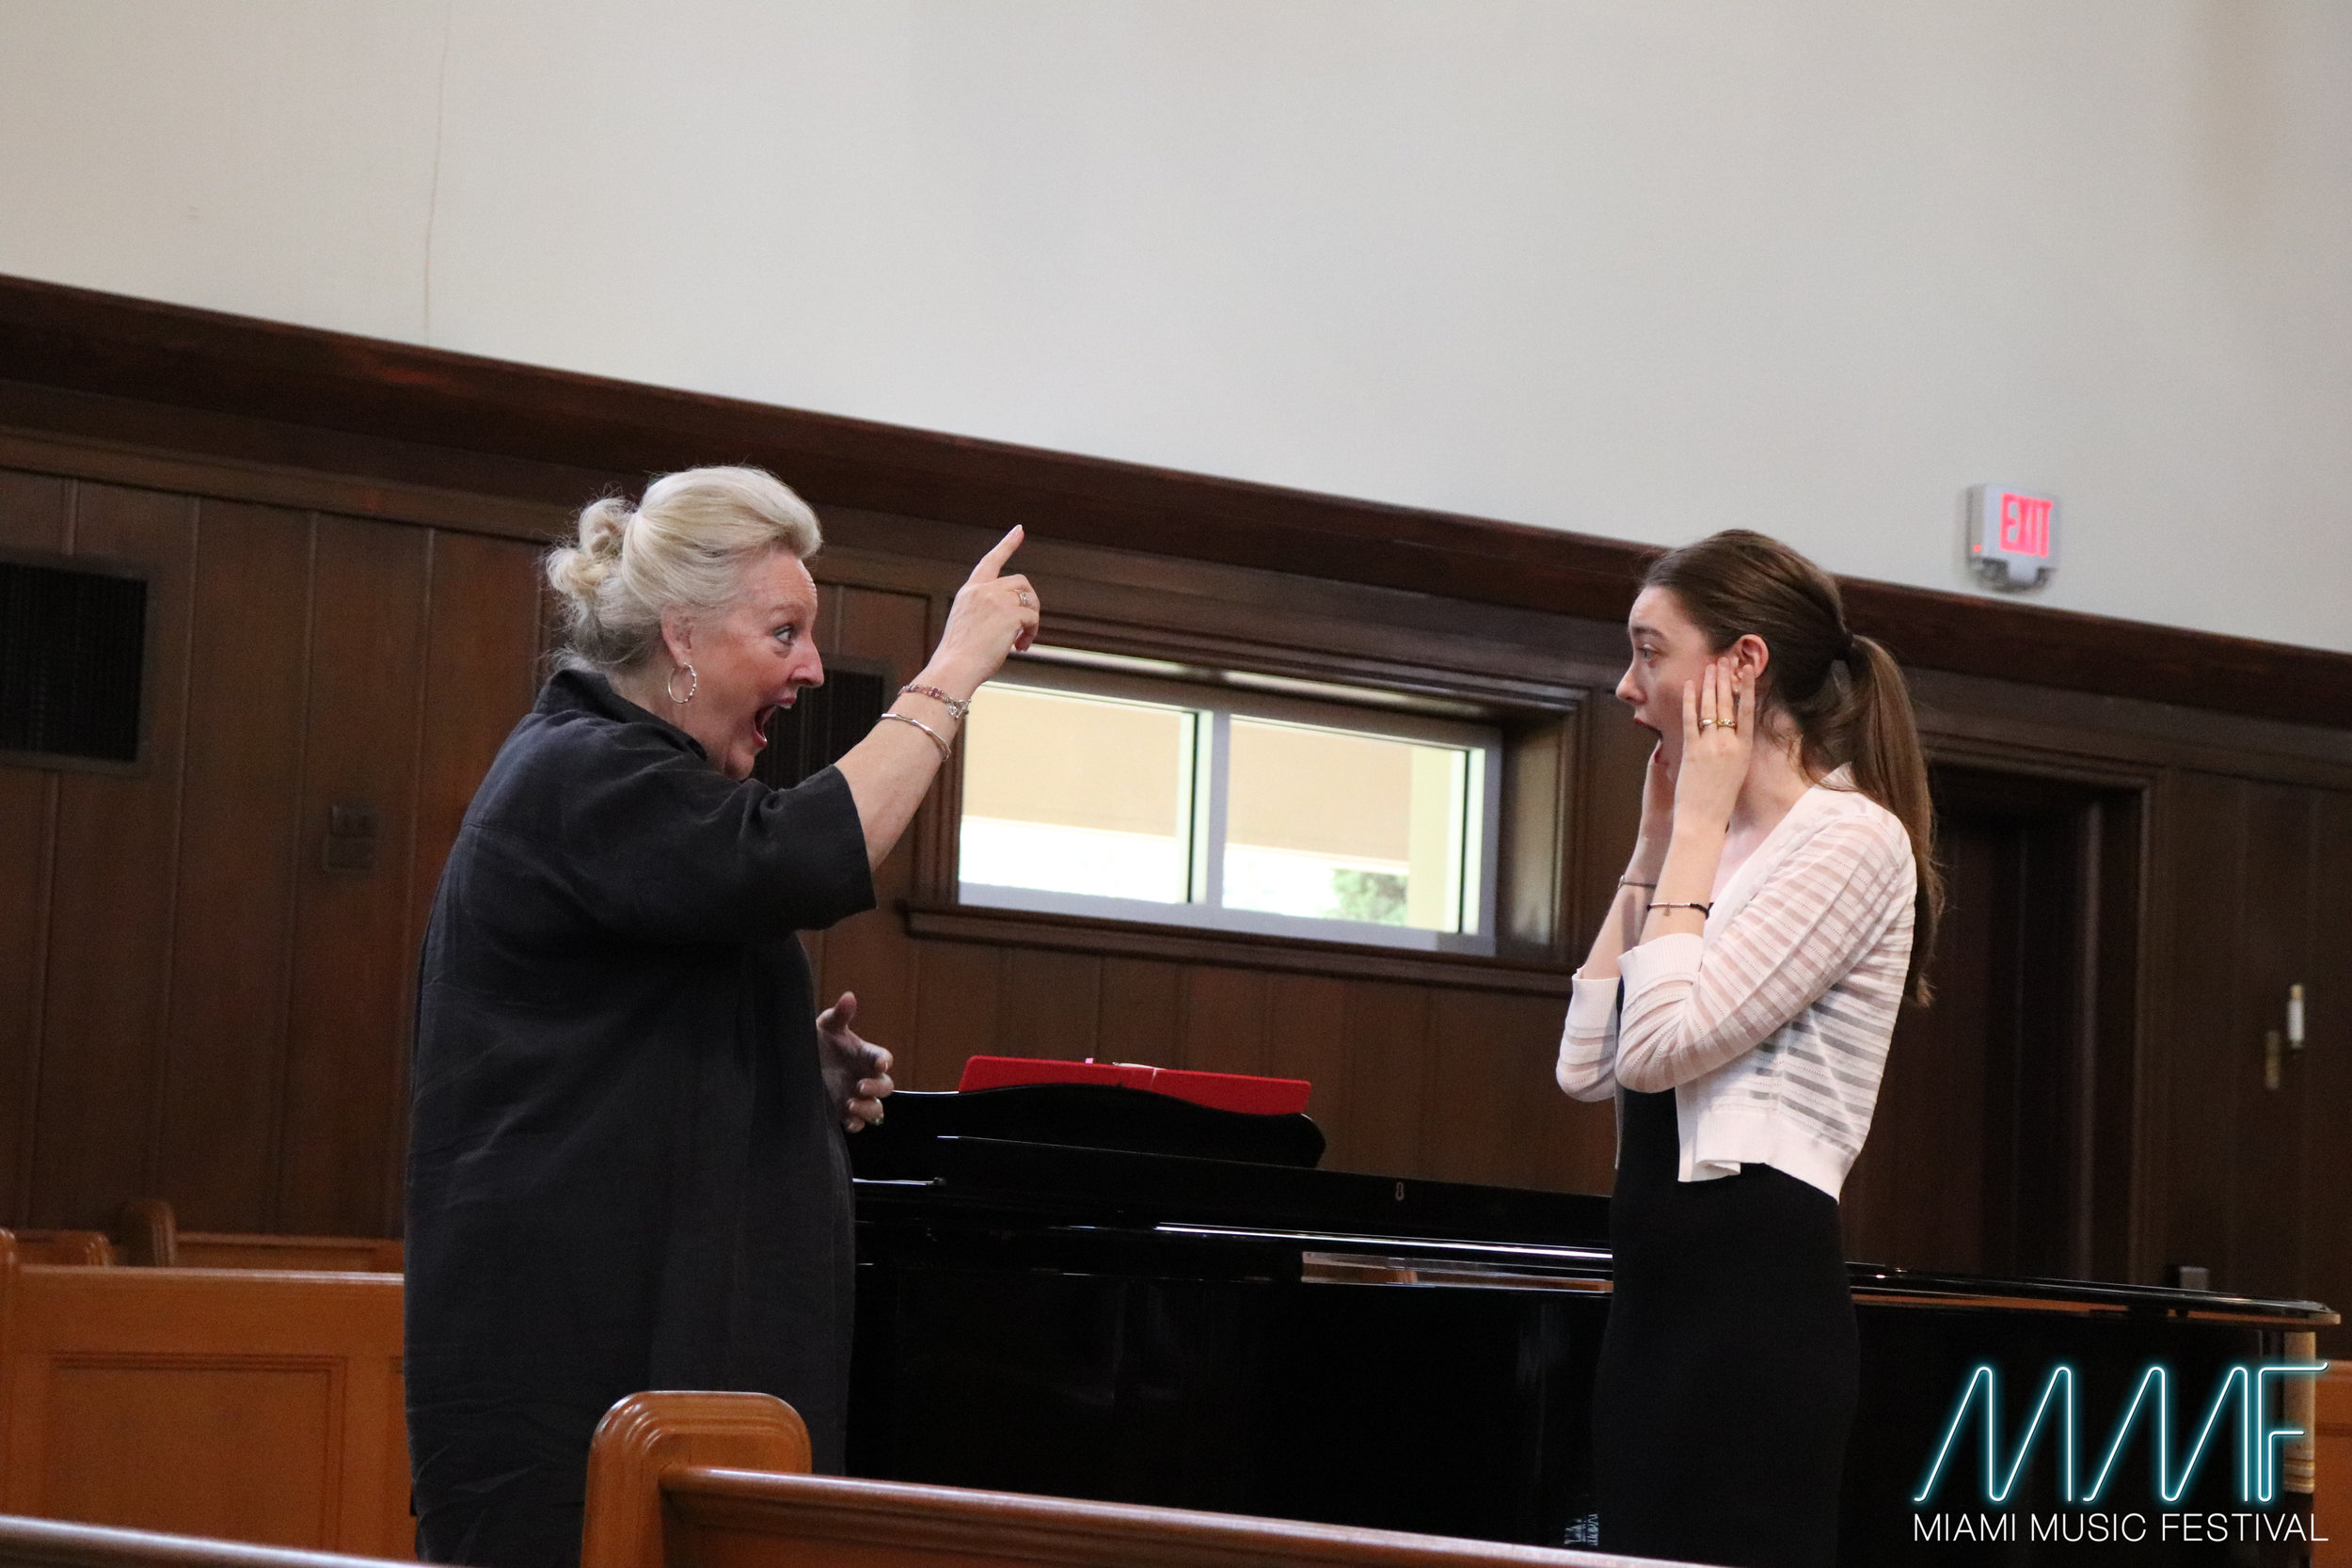 World Renowned Soprano Linda Watson giving a Masterclass in the 2018 Miami Music Festival.